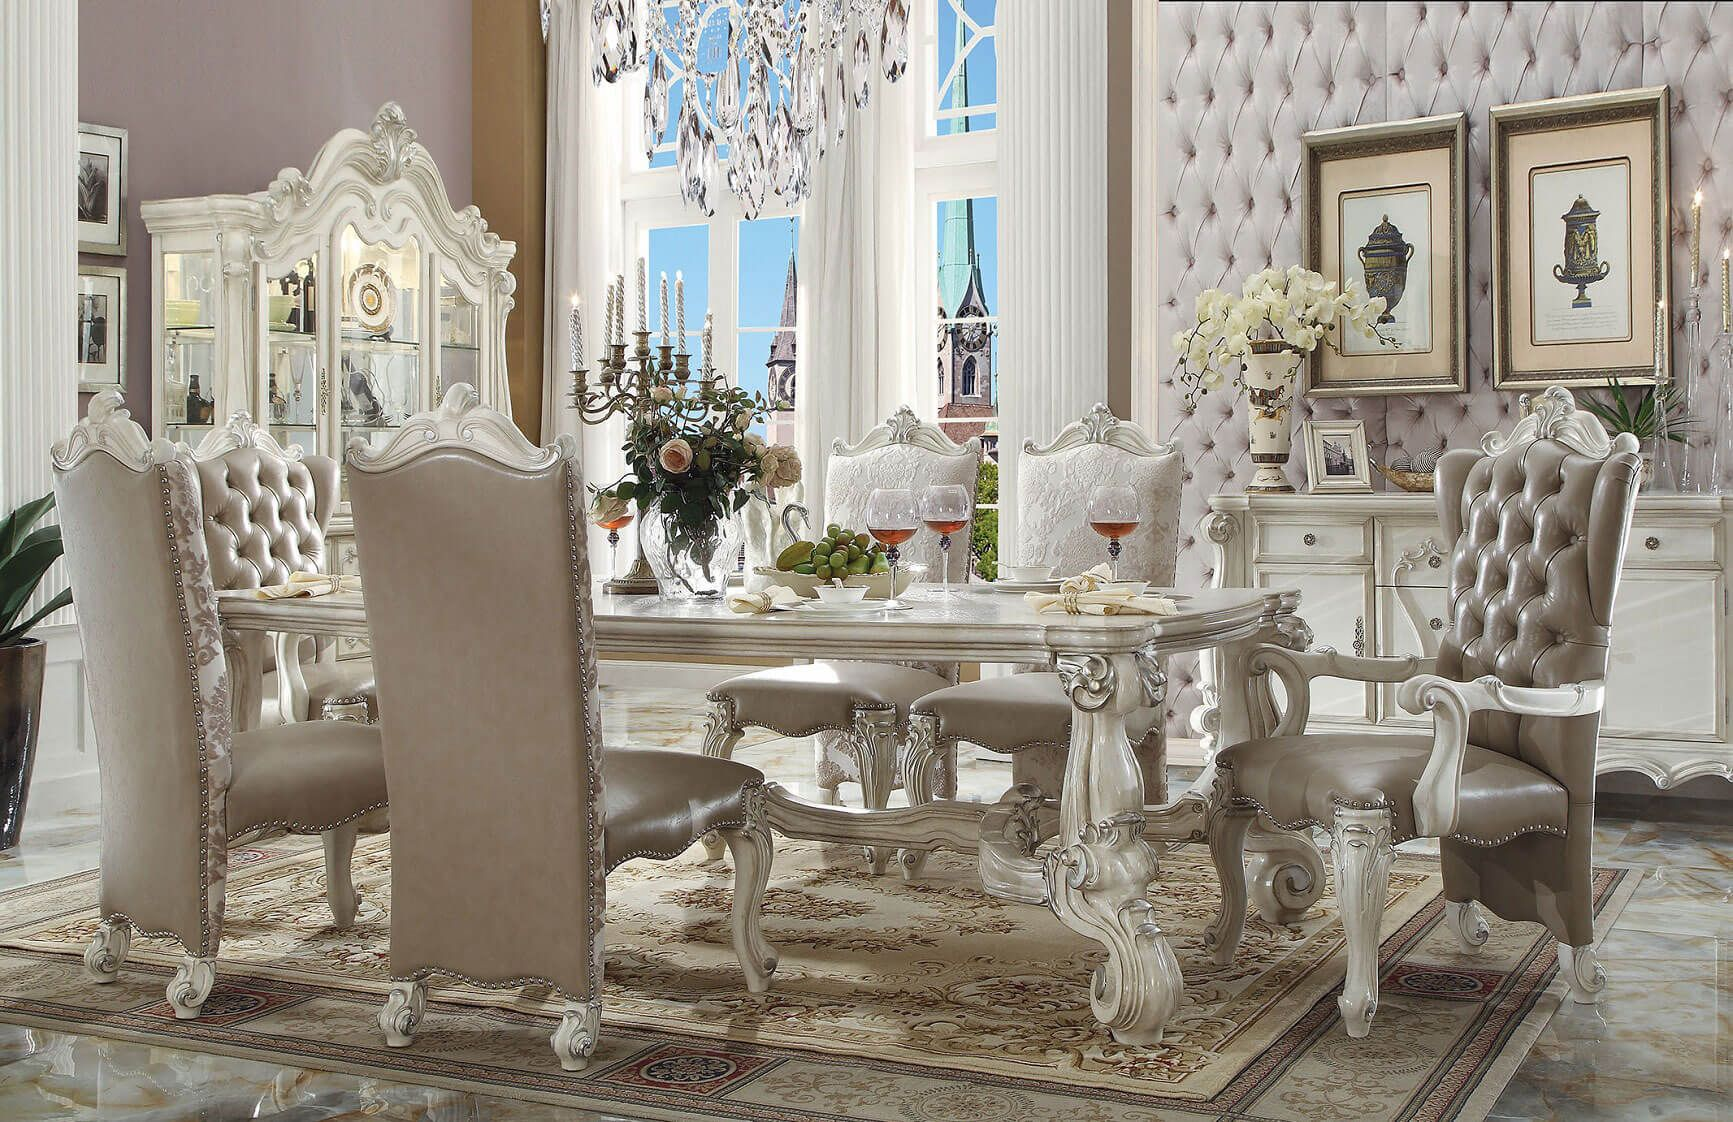 white dining room set formal. Acme Versailles Rectangular Dining Set In Bone White Includes: 1 Table, 4 Side Chairs, 2 Arm Chairs Dimensions: Table: X Chair: Room Formal D